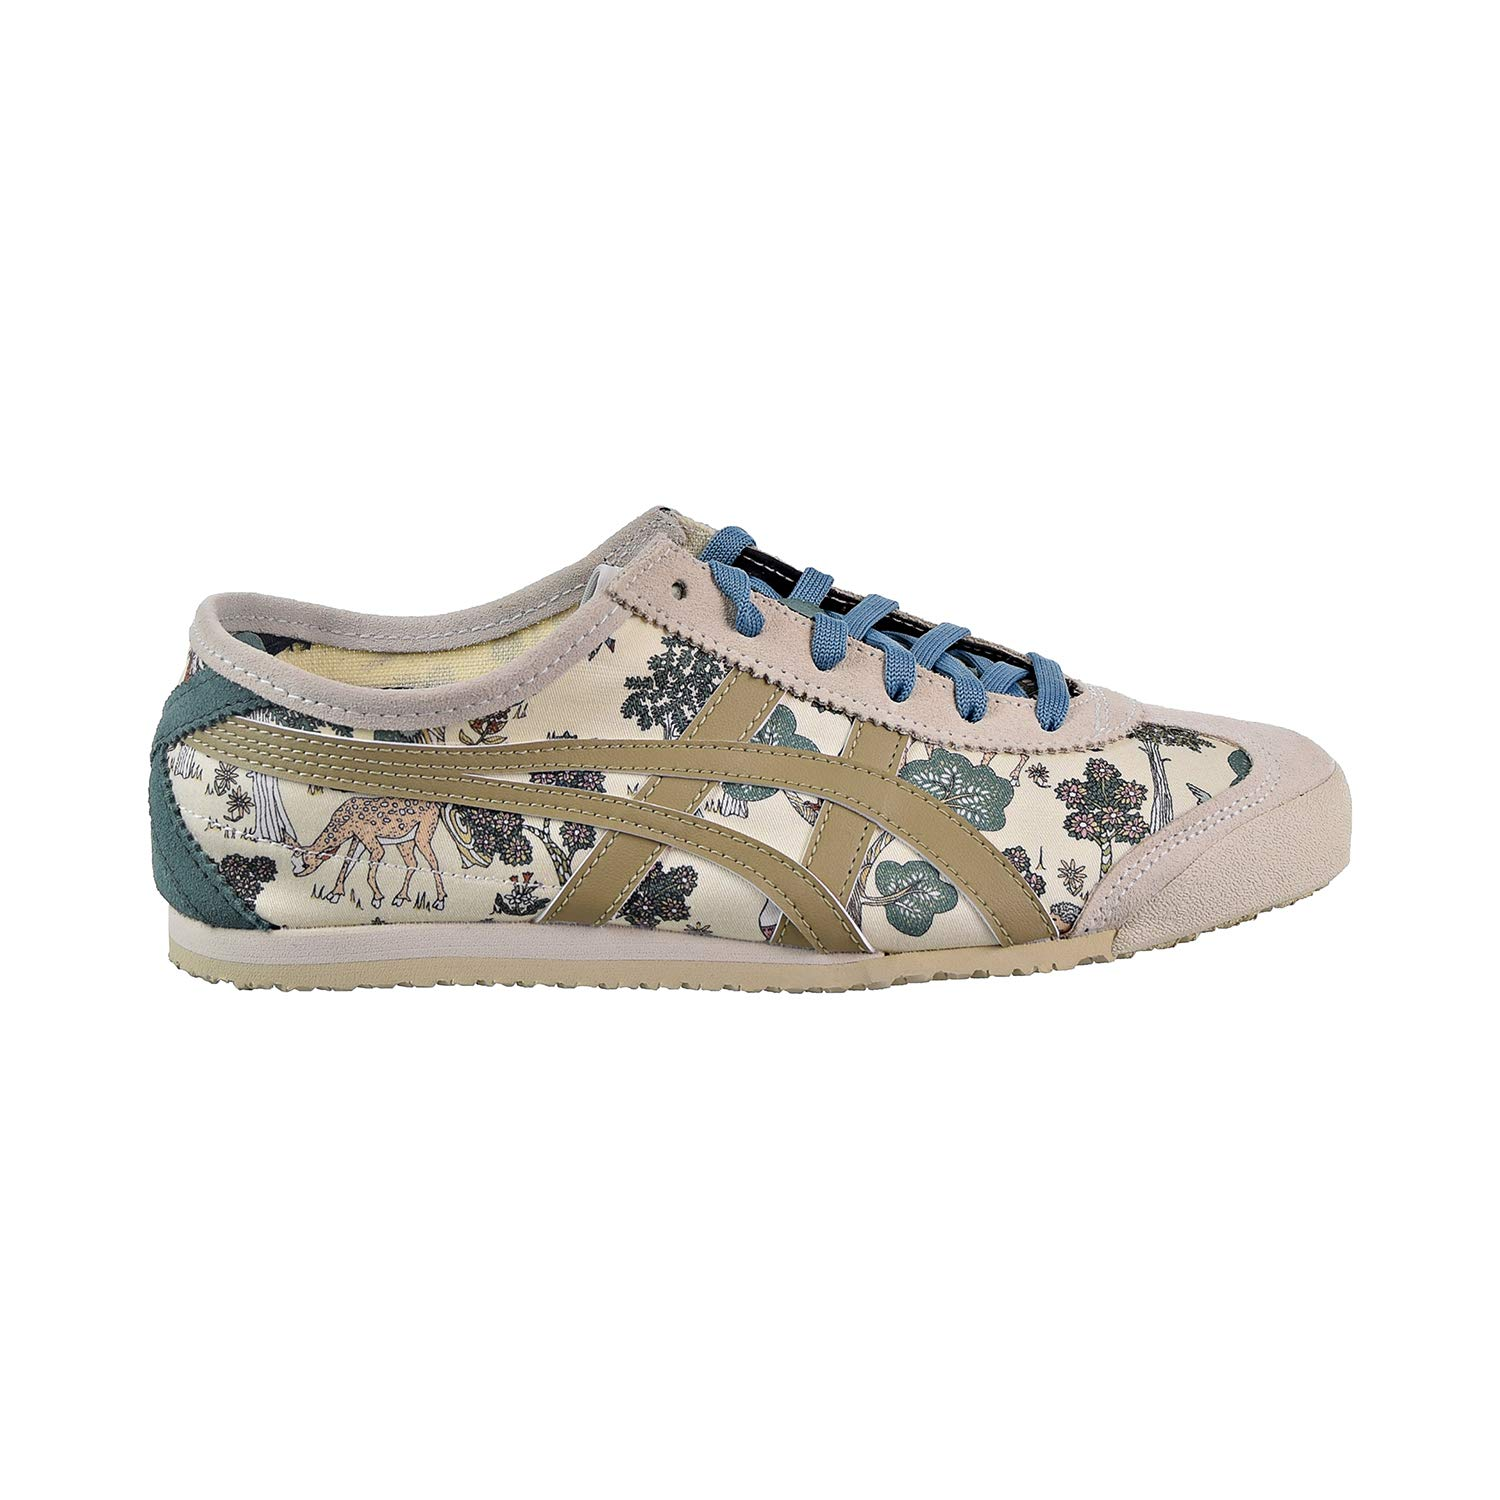 asics men's onitsuka tiger mexico 66 shoes launch options